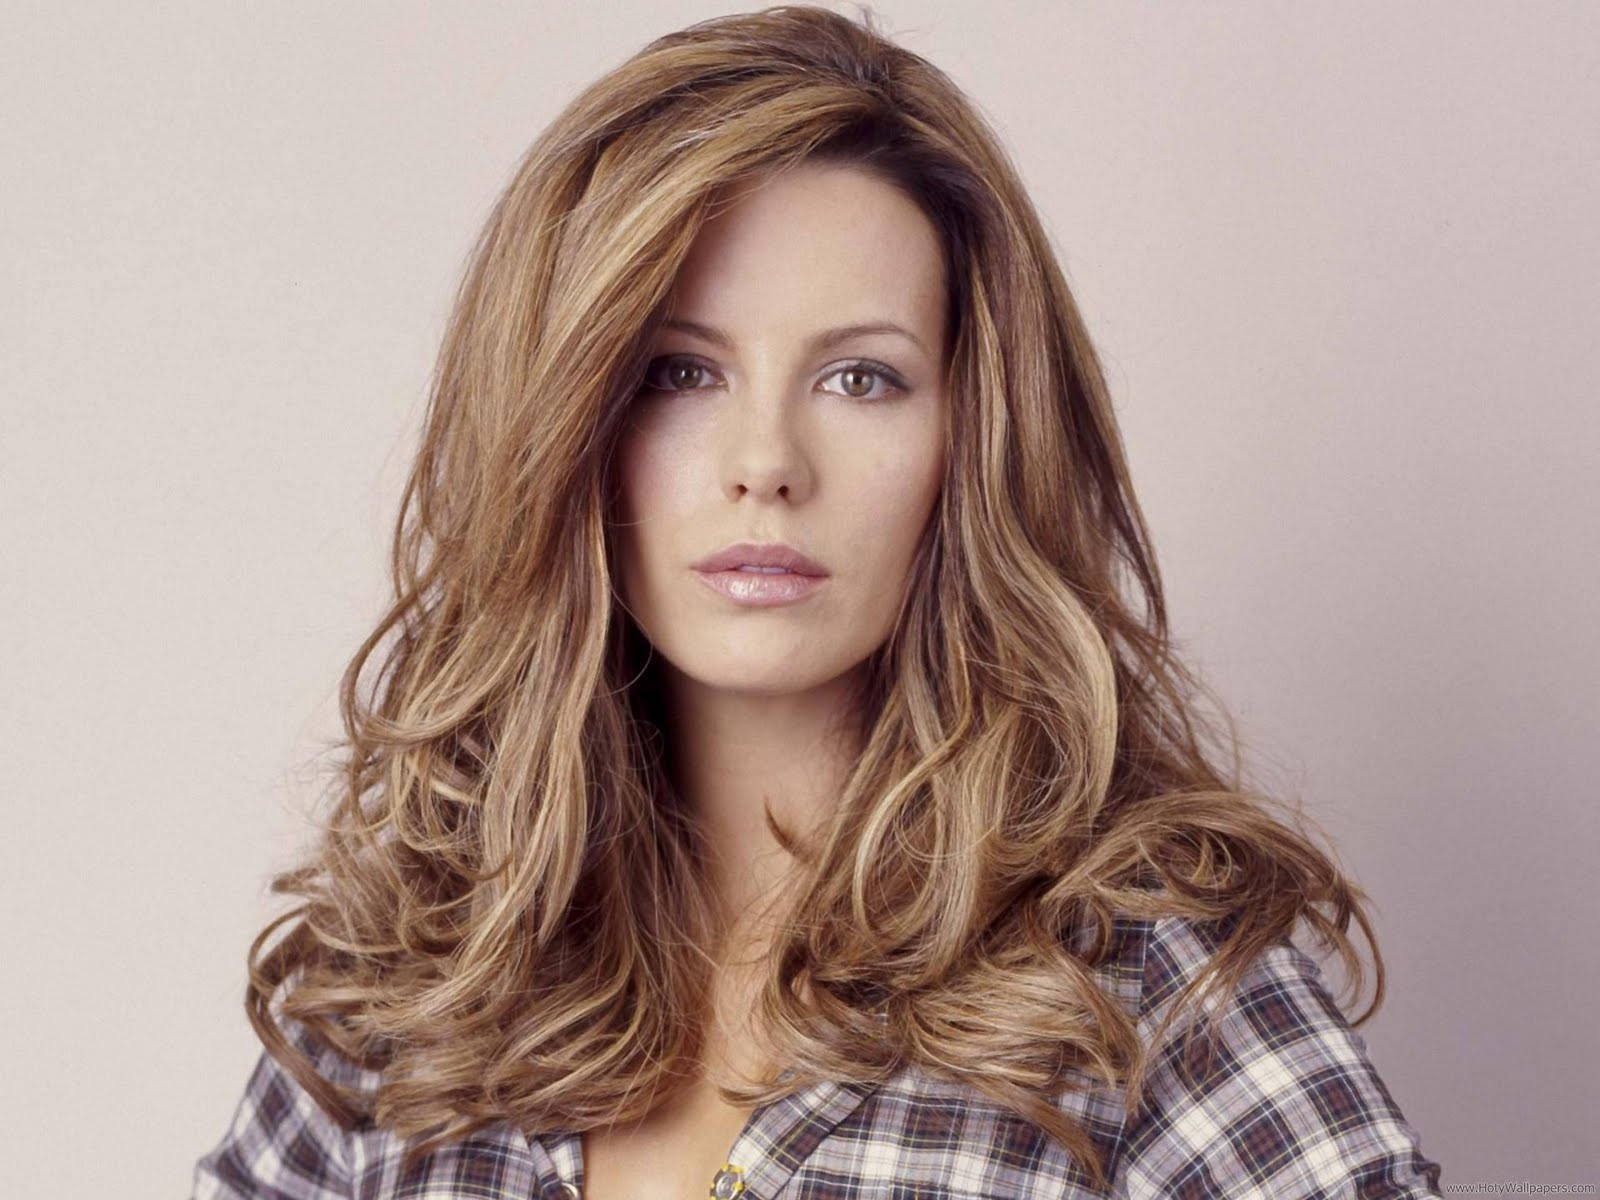 http://2.bp.blogspot.com/-Ml4j7Hf-SKg/Tog1MBq_YJI/AAAAAAAALWg/ZT7XT8OiIV8/s1600/kate_beckinsale_hd_wallpaper-12-1600x1200.jpg